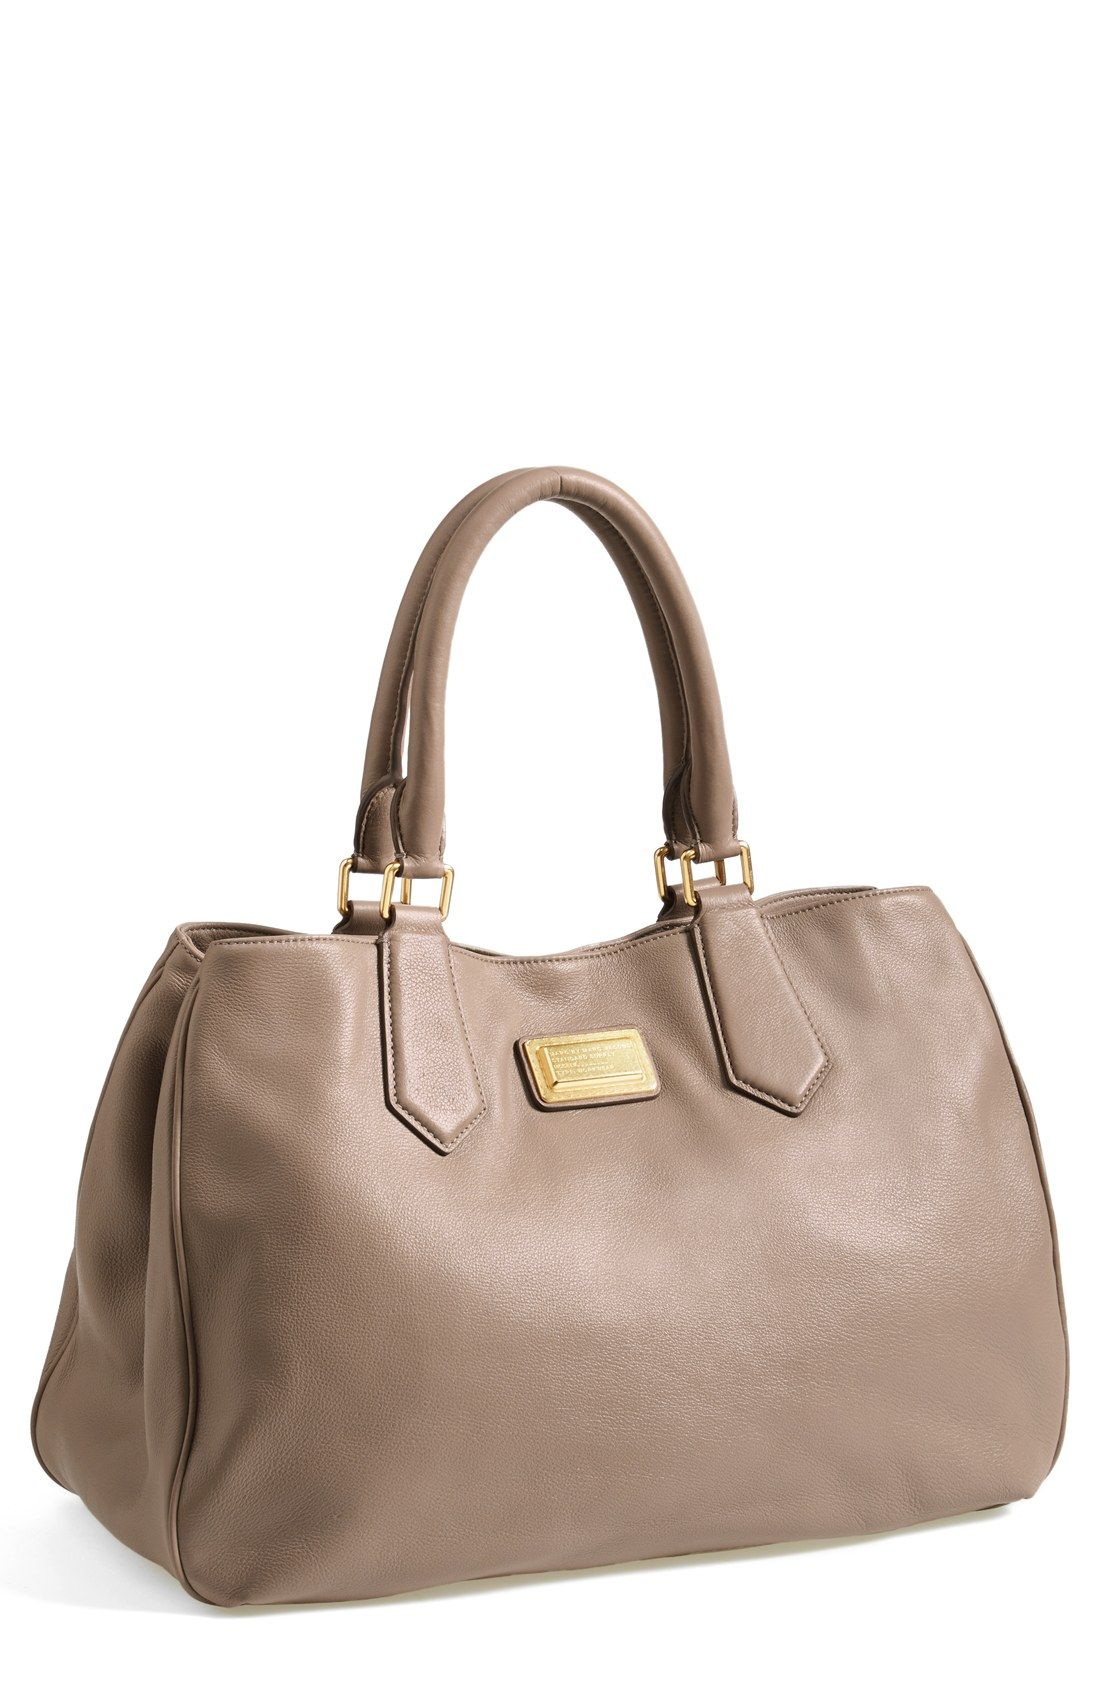 Leather Tote Marc Jacobs | ✿iBAG gauge!✿ | Bags, Purses